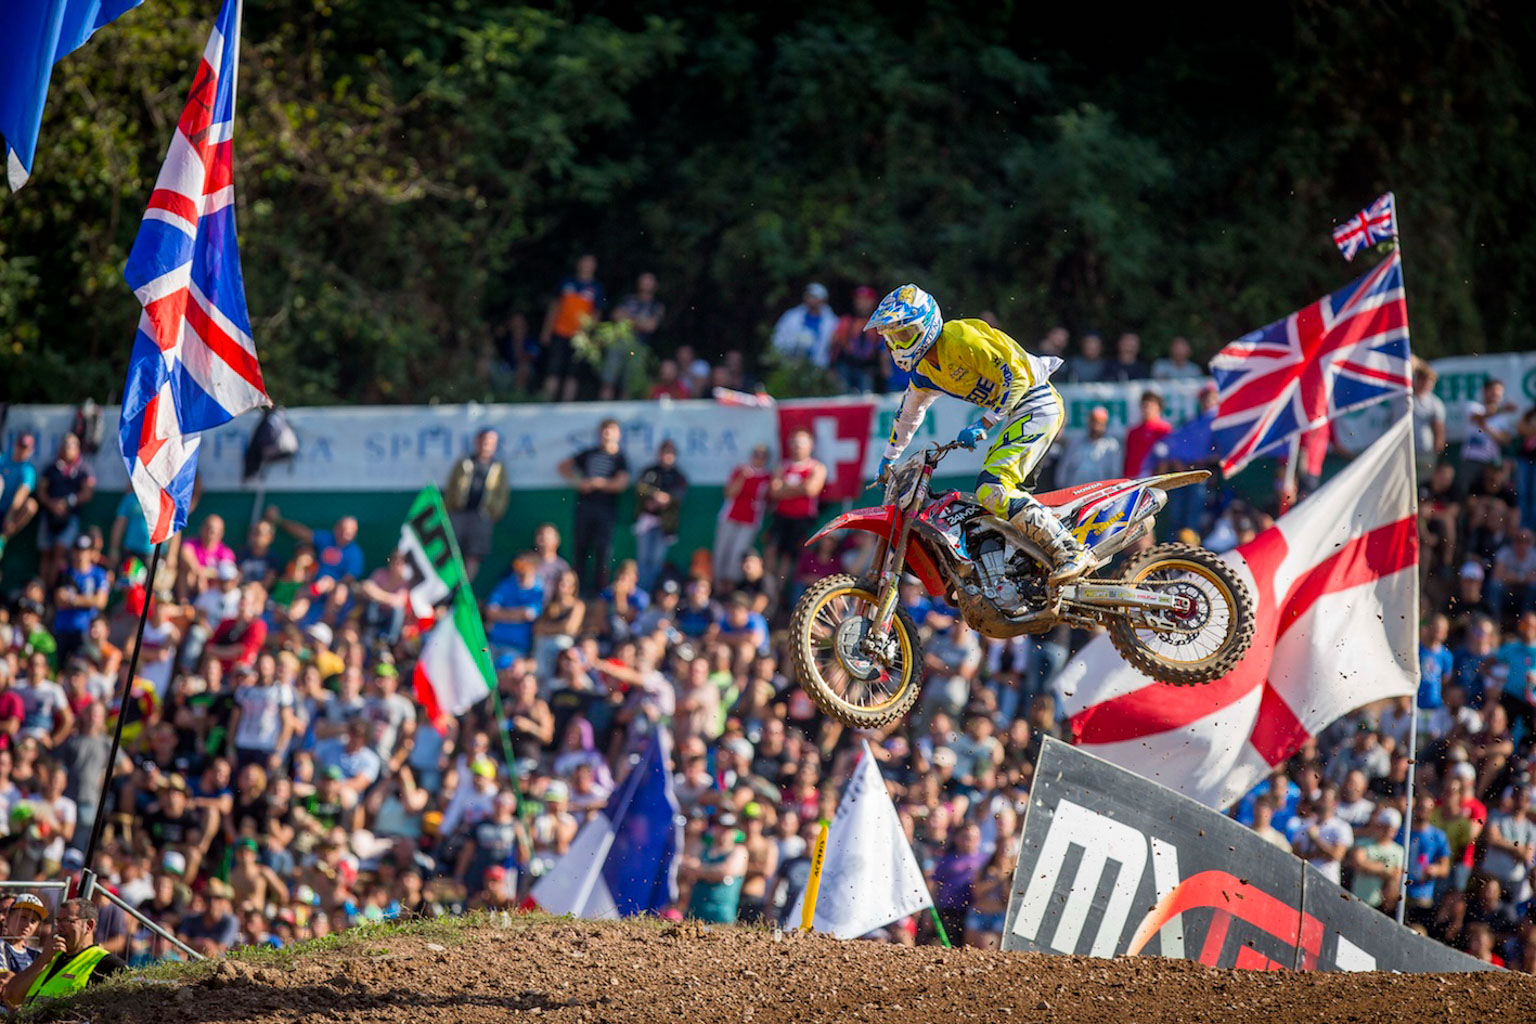 The Nations was a rare motocross appearance in Europe for Swede Noren